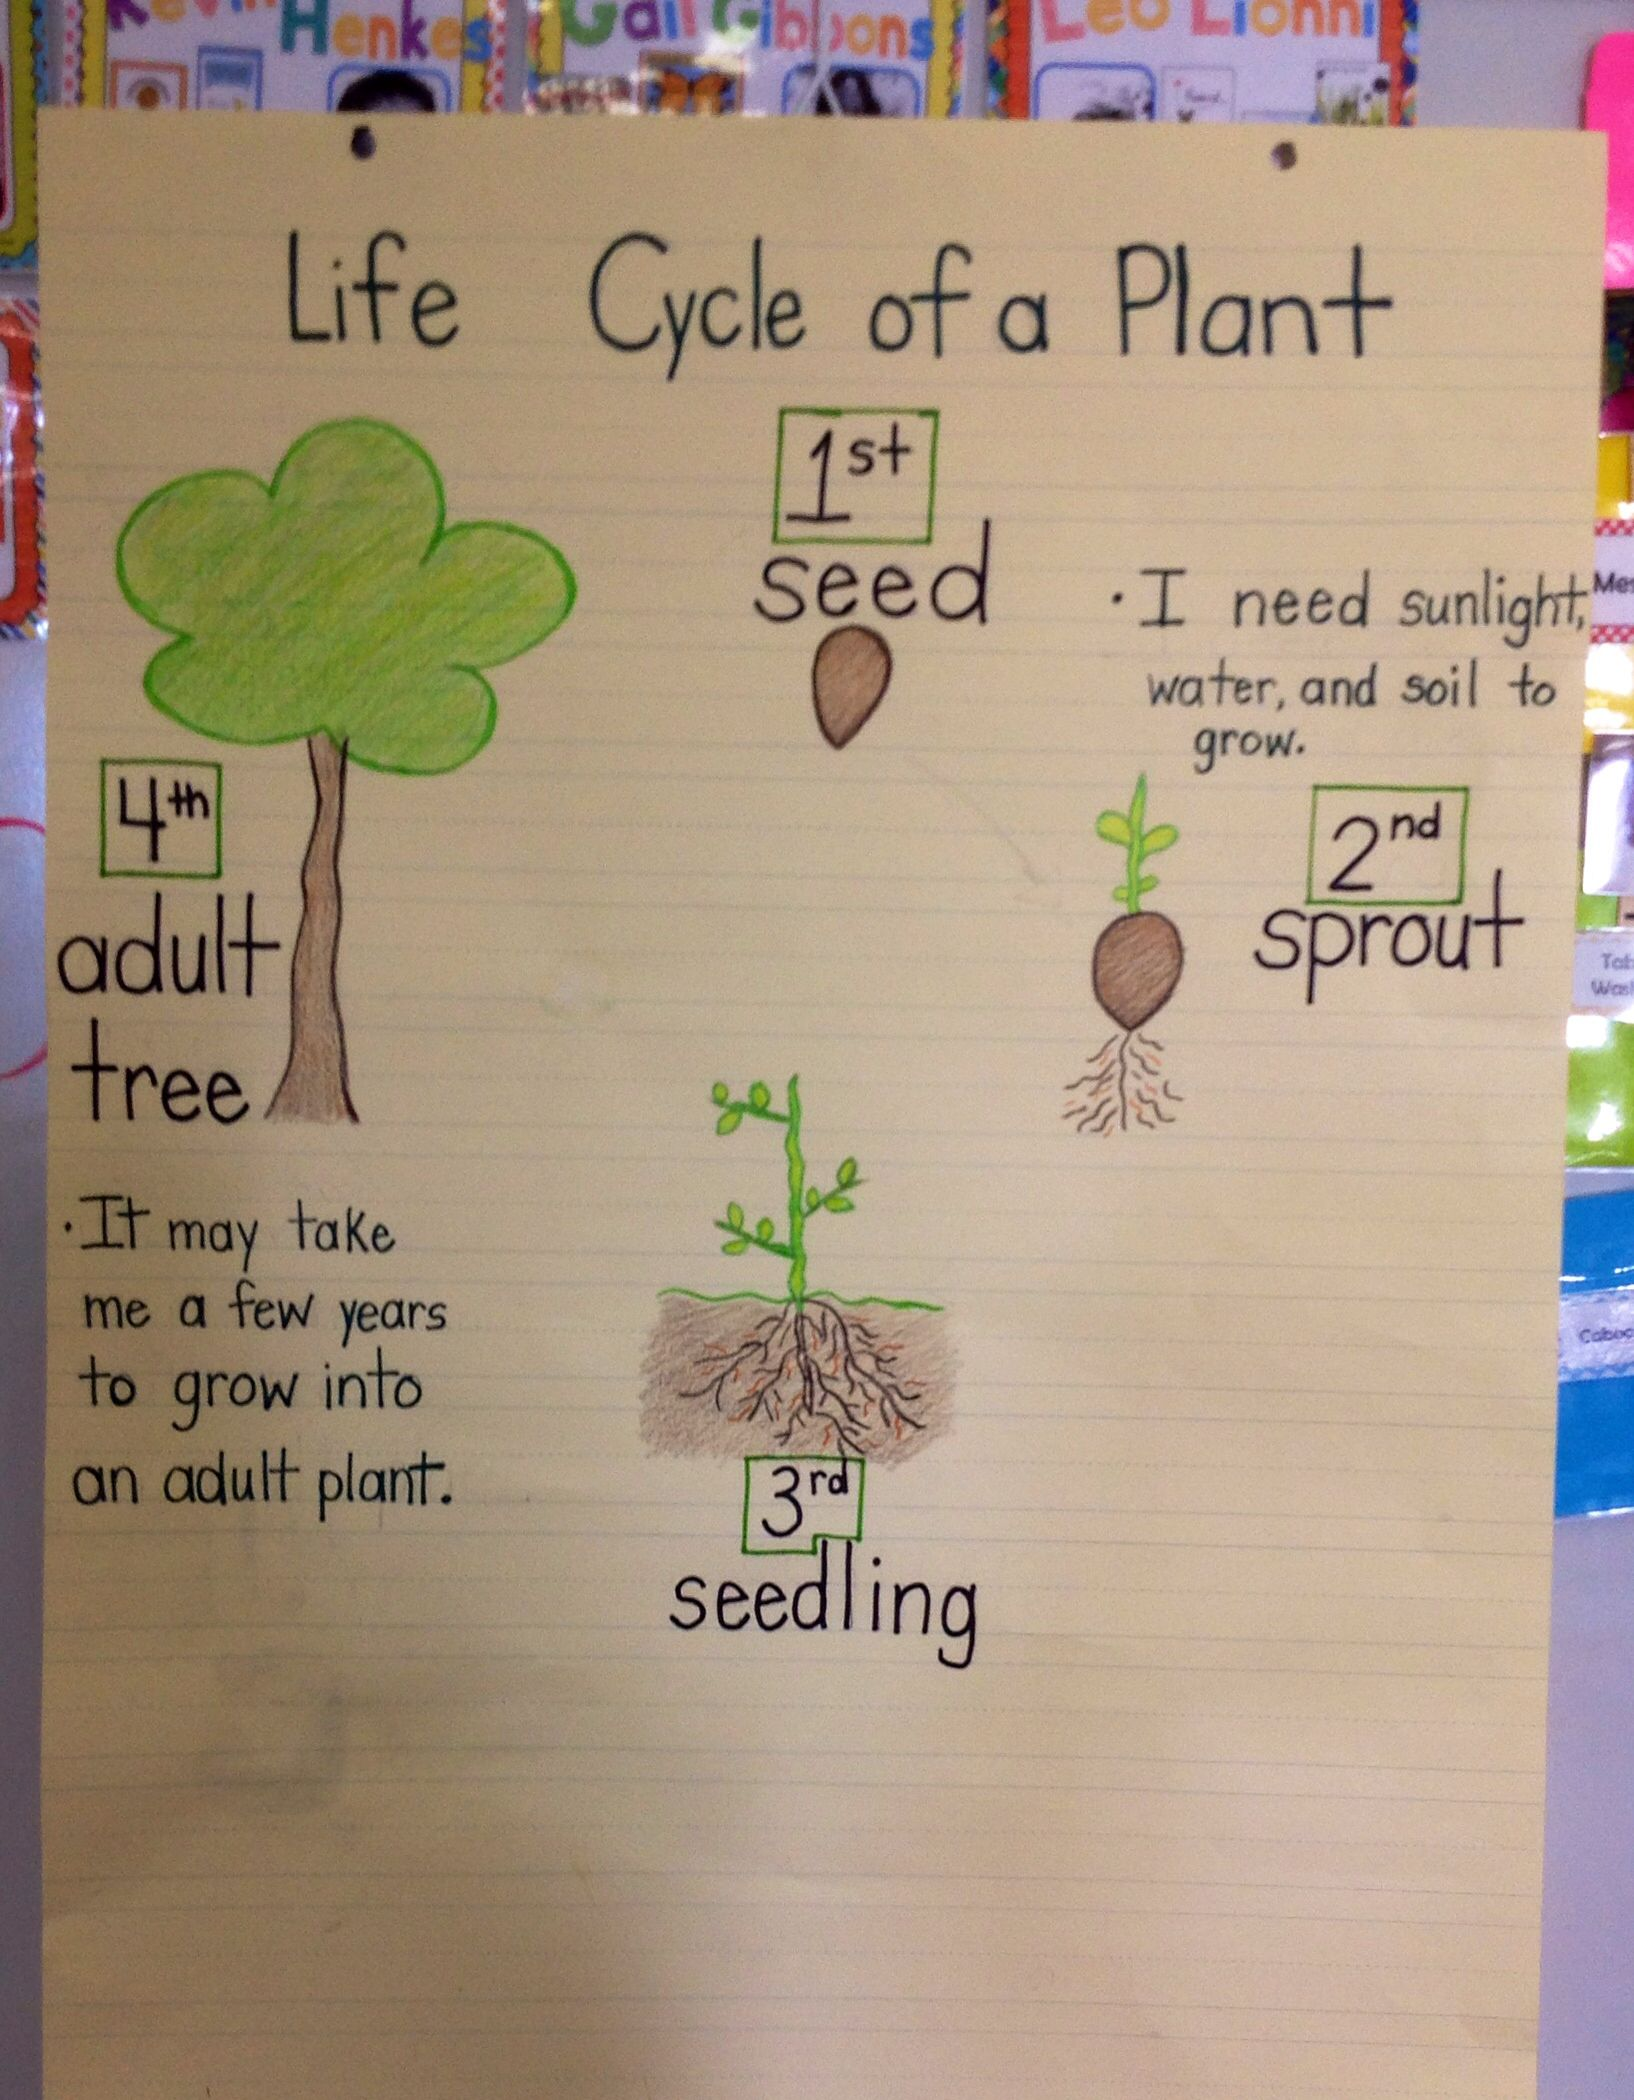 Research Focus - Life Cycle of a Plant